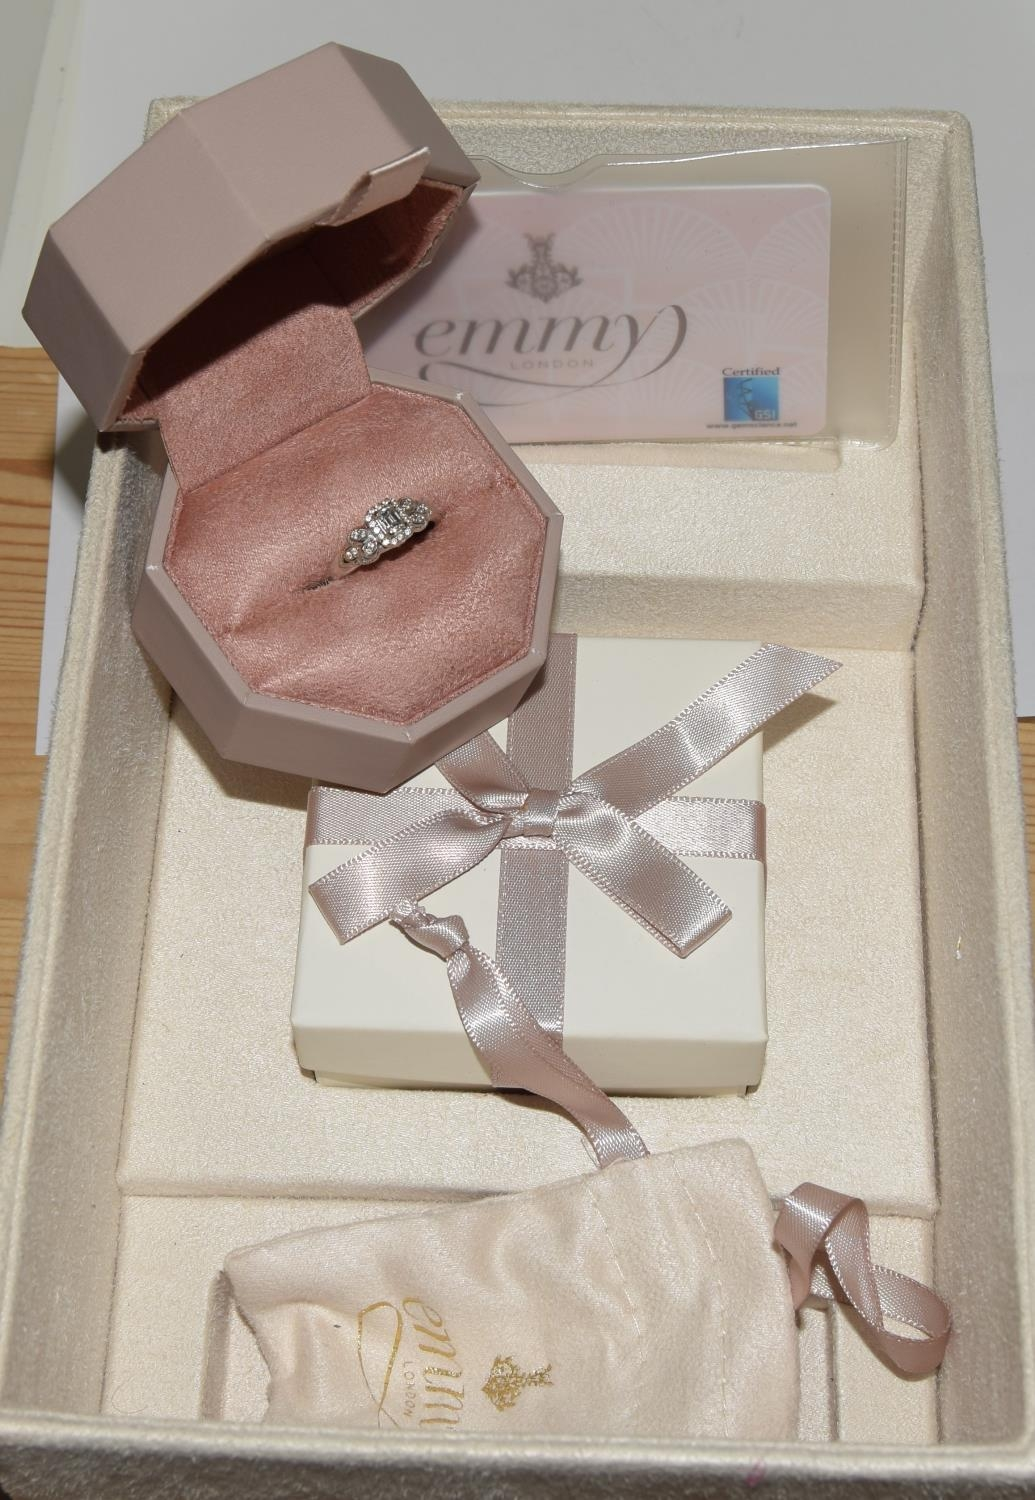 18ct white gold ladies diamond ring with certificat and original boxes from Emmy of London size O